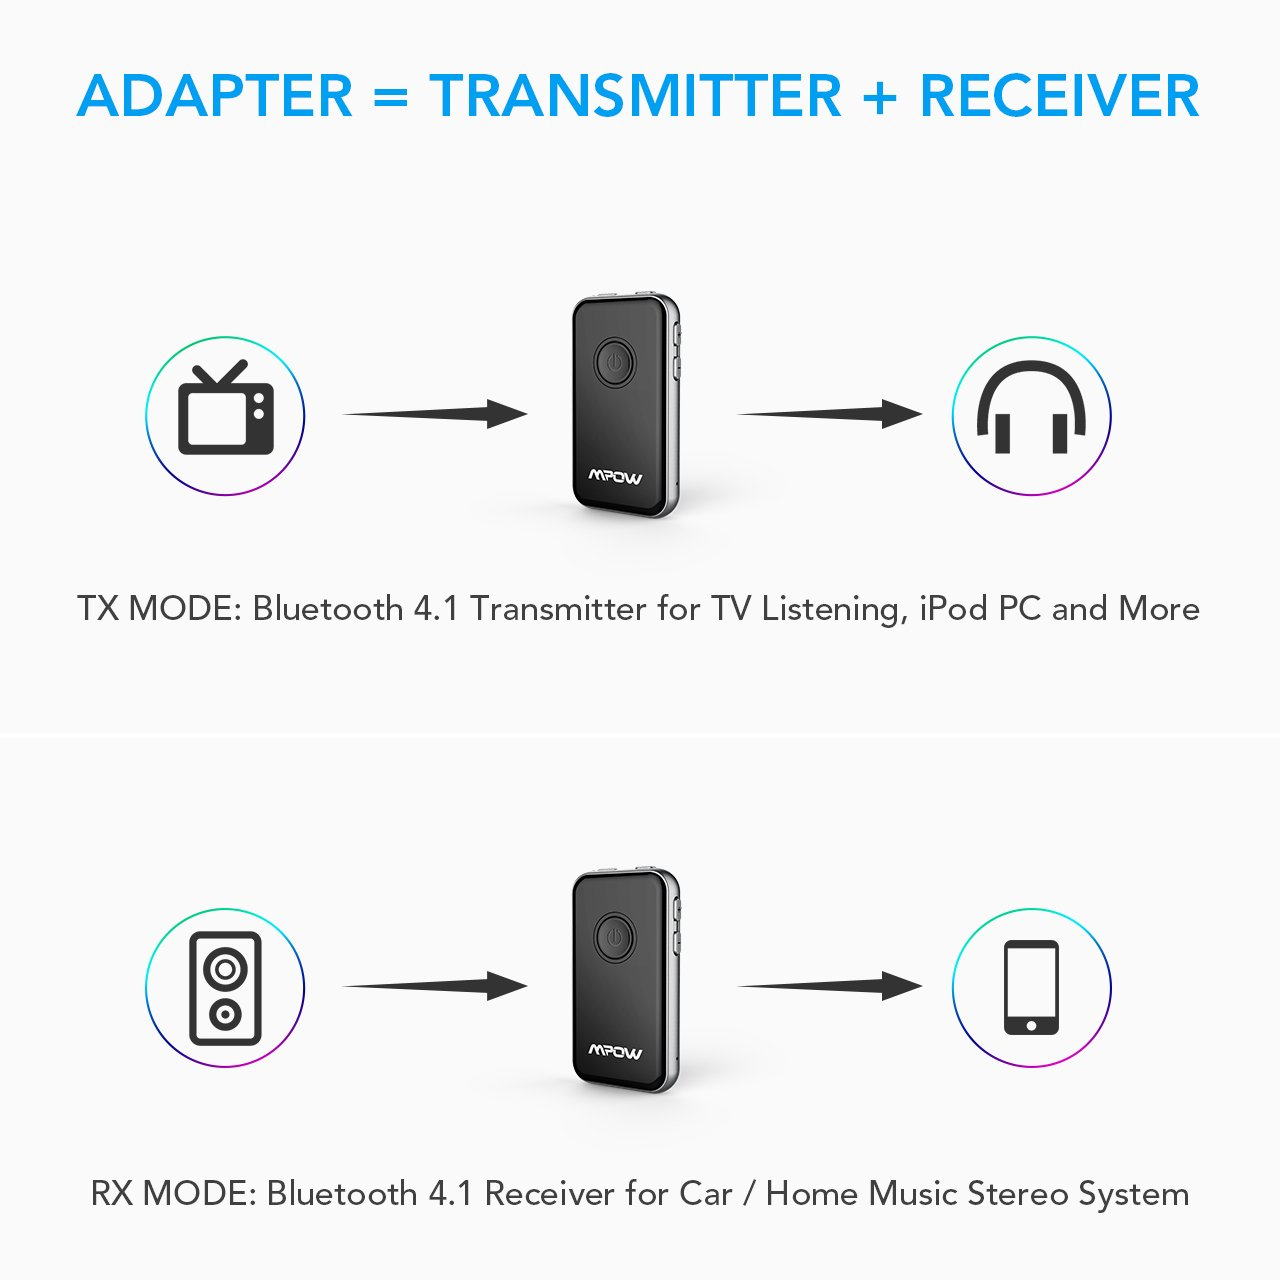 Mpow Bluetooth 41 Transmitter Receiver Unboxed 2 In 1 Tx Mode Pair With Your Headphones Speakers To Enjoy Audio Feast From Non Media Devices Mp3 Tv Via 35mm Adapter Or Rca